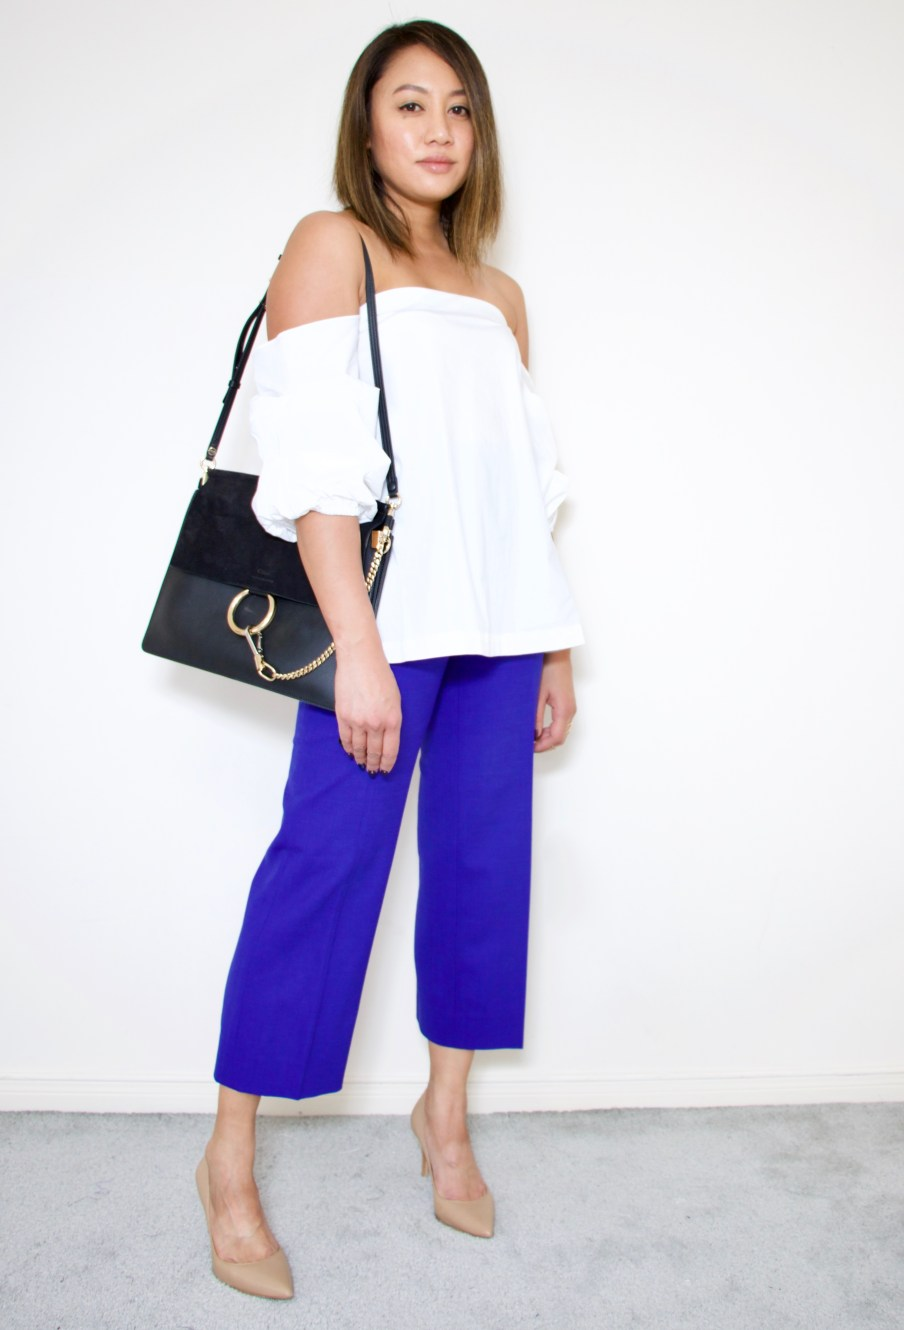 culottes + off the shoulder top